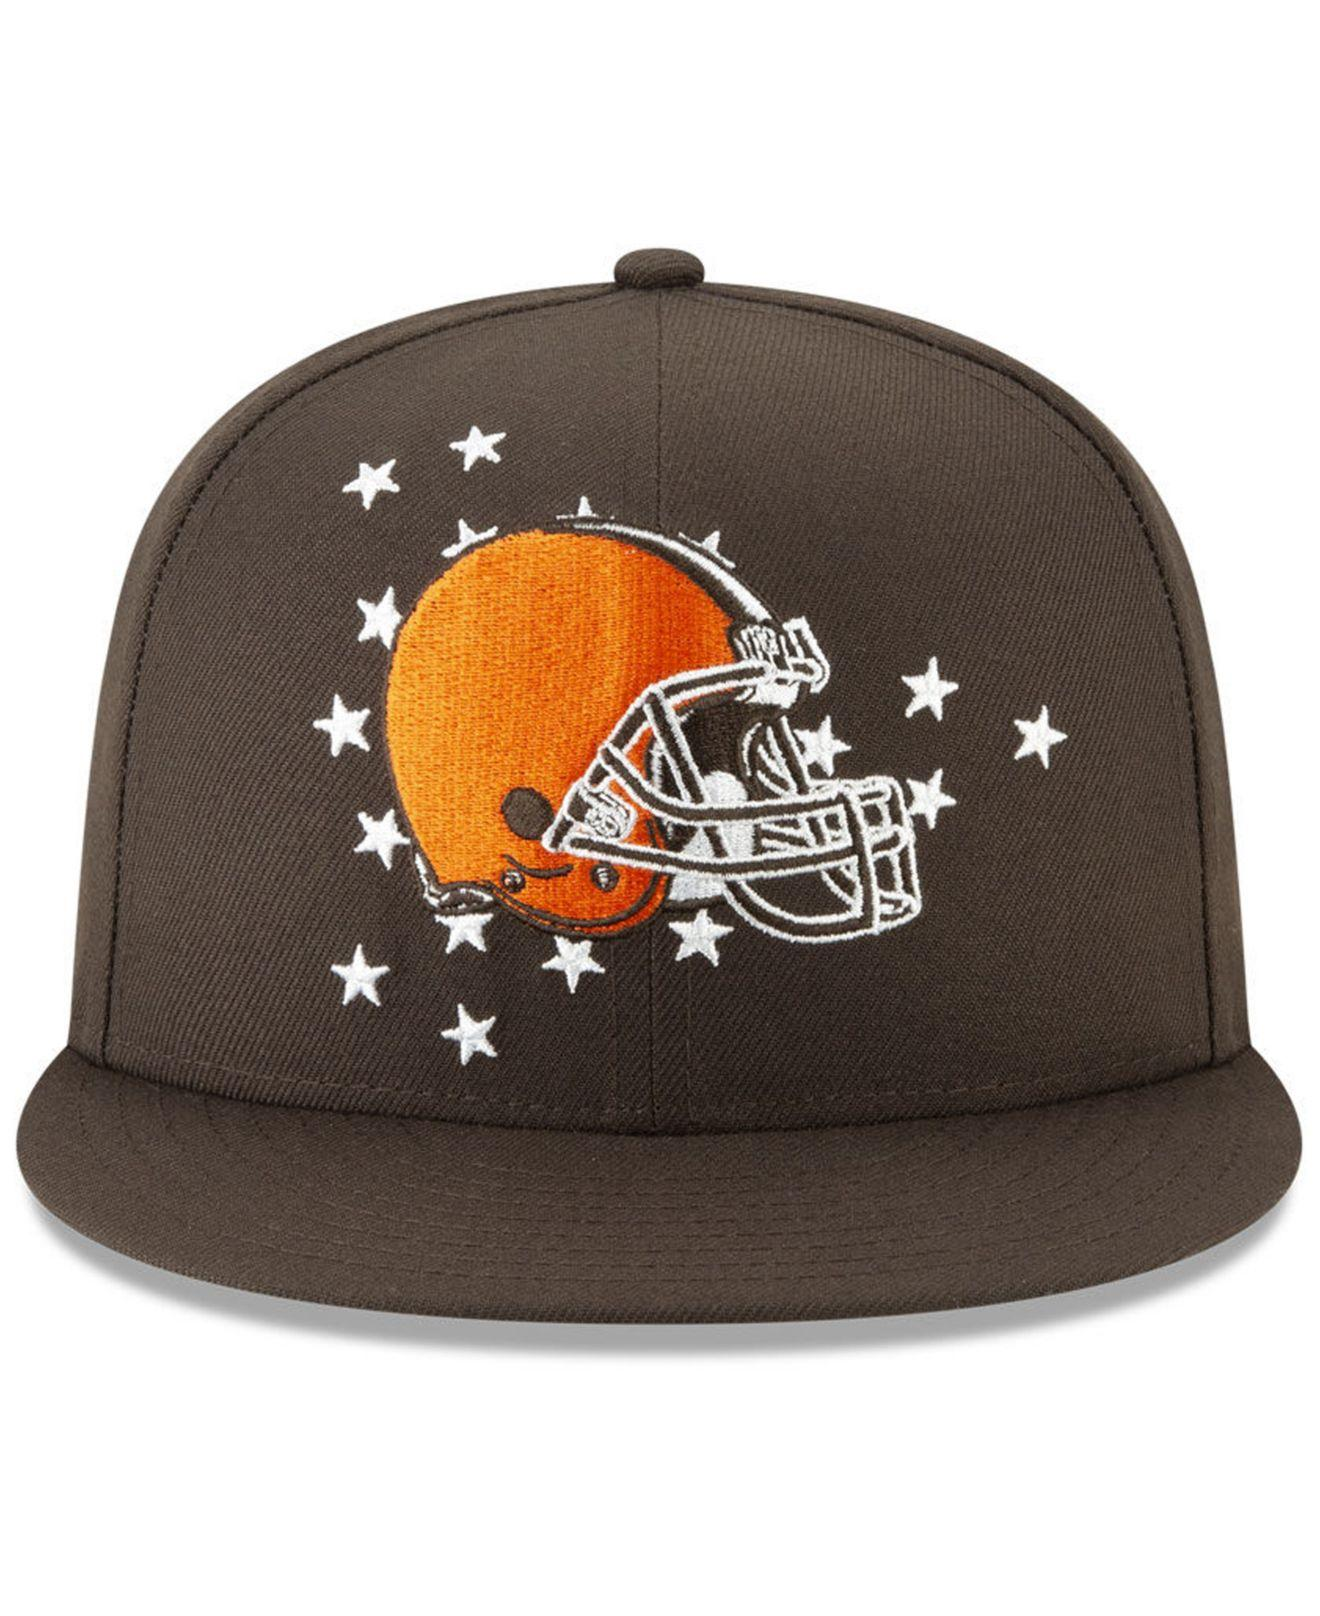 40374c79 Lyst - KTZ Cleveland Browns 2019 Draft 59fifty Fitted Cap in Brown ...